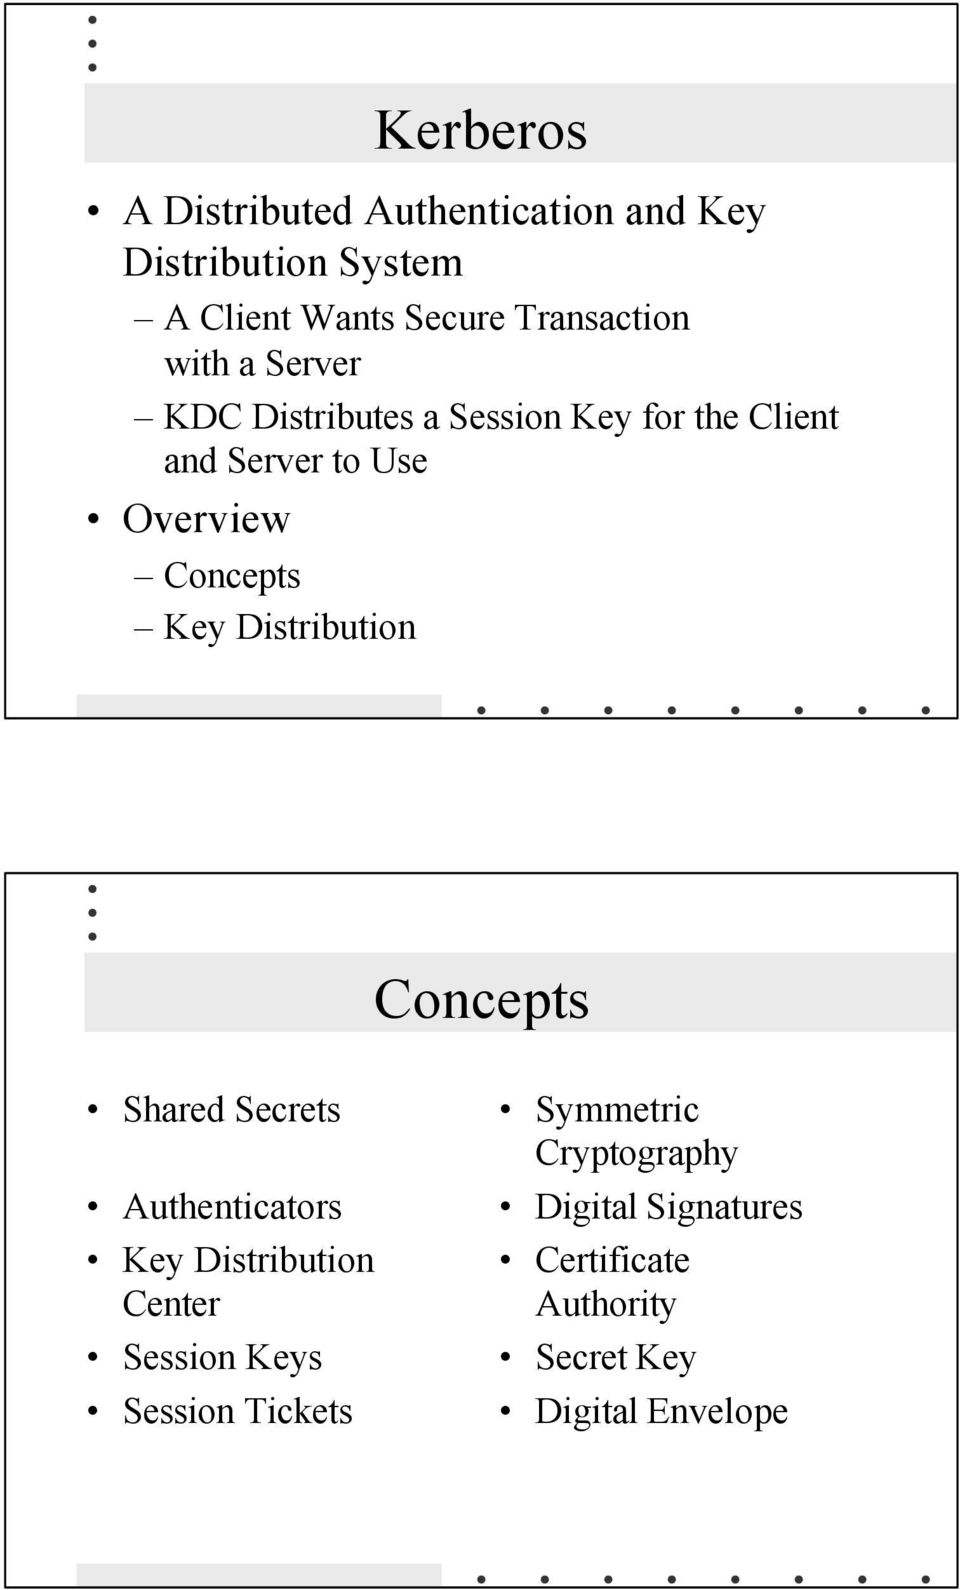 Concepts Key Distribution Concepts Shared Secrets Authenticators Key Distribution Center Session